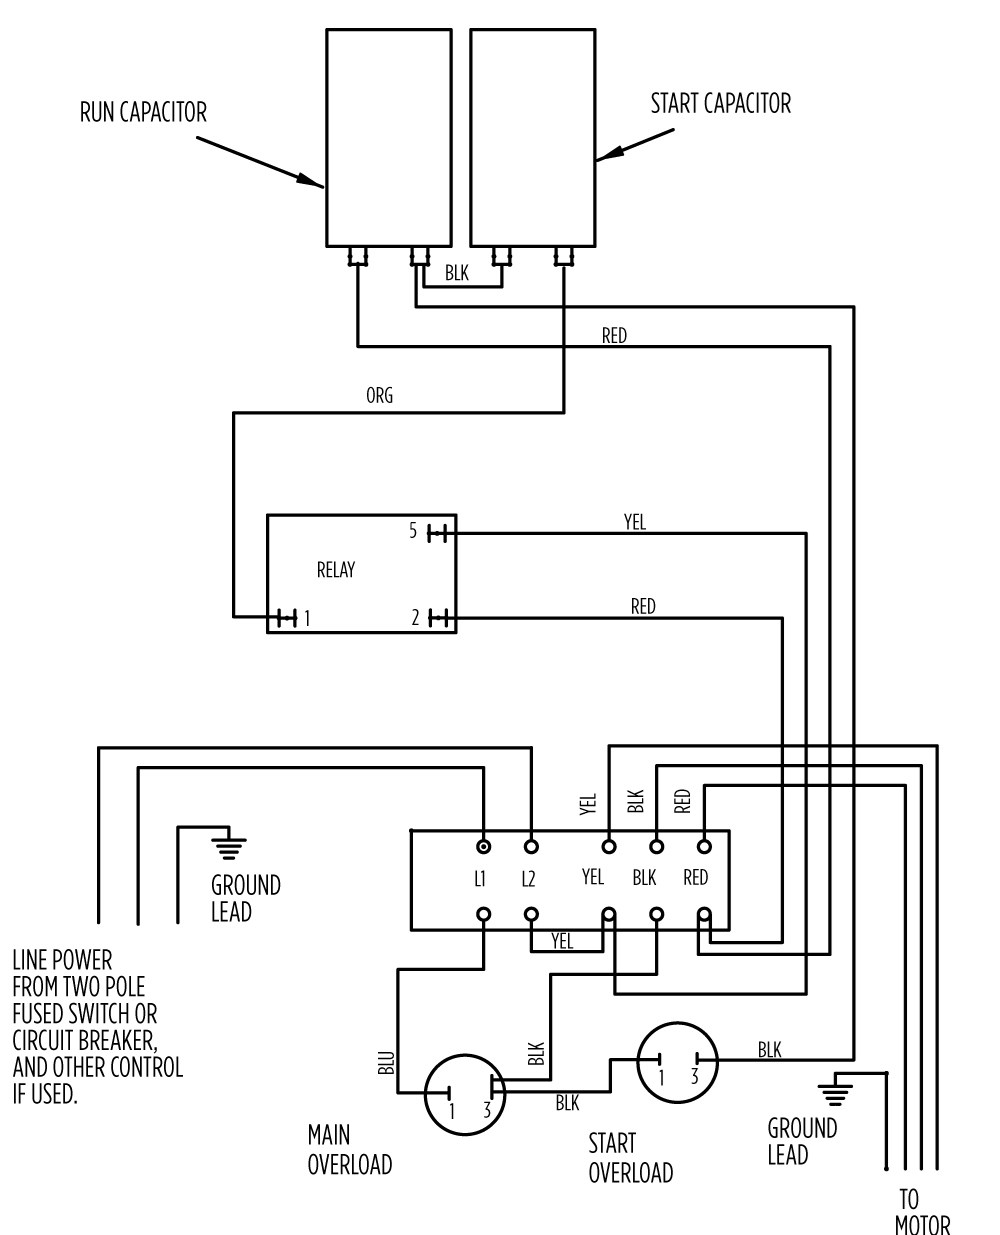 2 hp standard 282 301 8110_aim gallery?format=jpg&quality=80 aim manual page 55 single phase motors and controls motor submersible pump control panel circuit diagram at mifinder.co